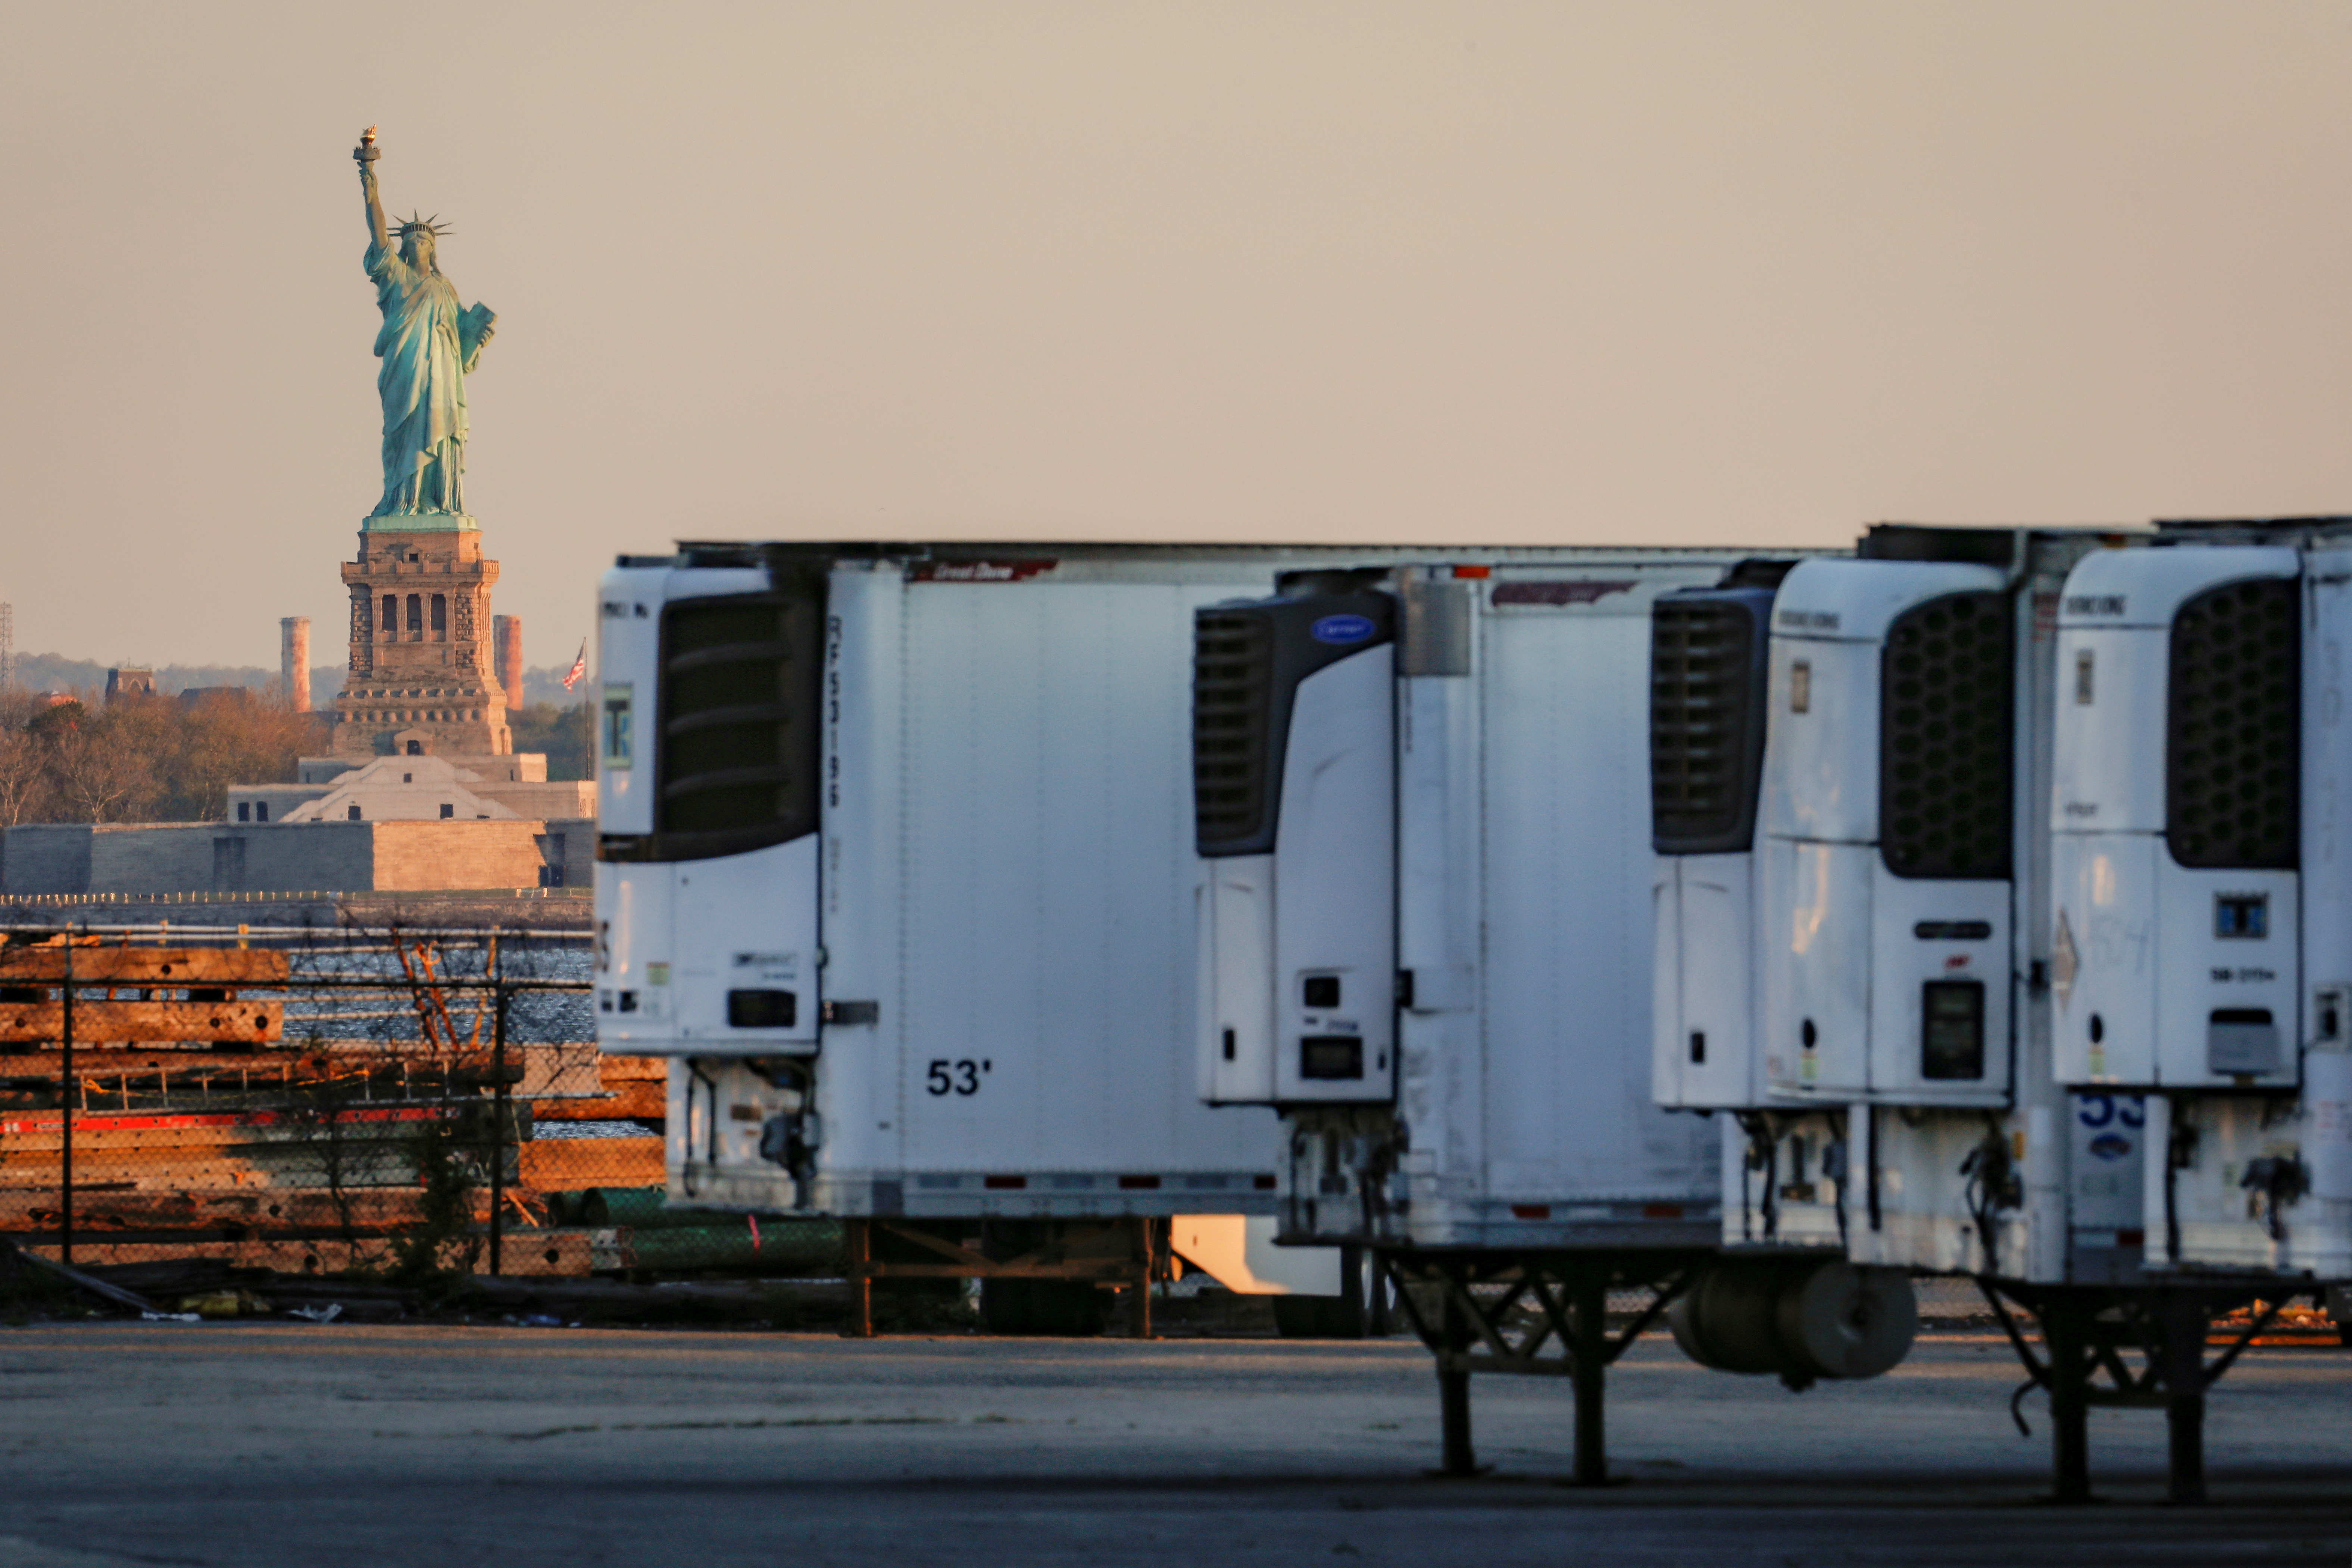 Refrigerated tractor trailers used to store bodies of deceased people are seen at a temporary morgue, with the Statue of Liberty seen in the background, during the coronavirus disease (COVID-19) outbreak, in the Brooklyn borough of New York City, U.S., May 13, 2020. REUTERS/Brendan McDermid/File Photo